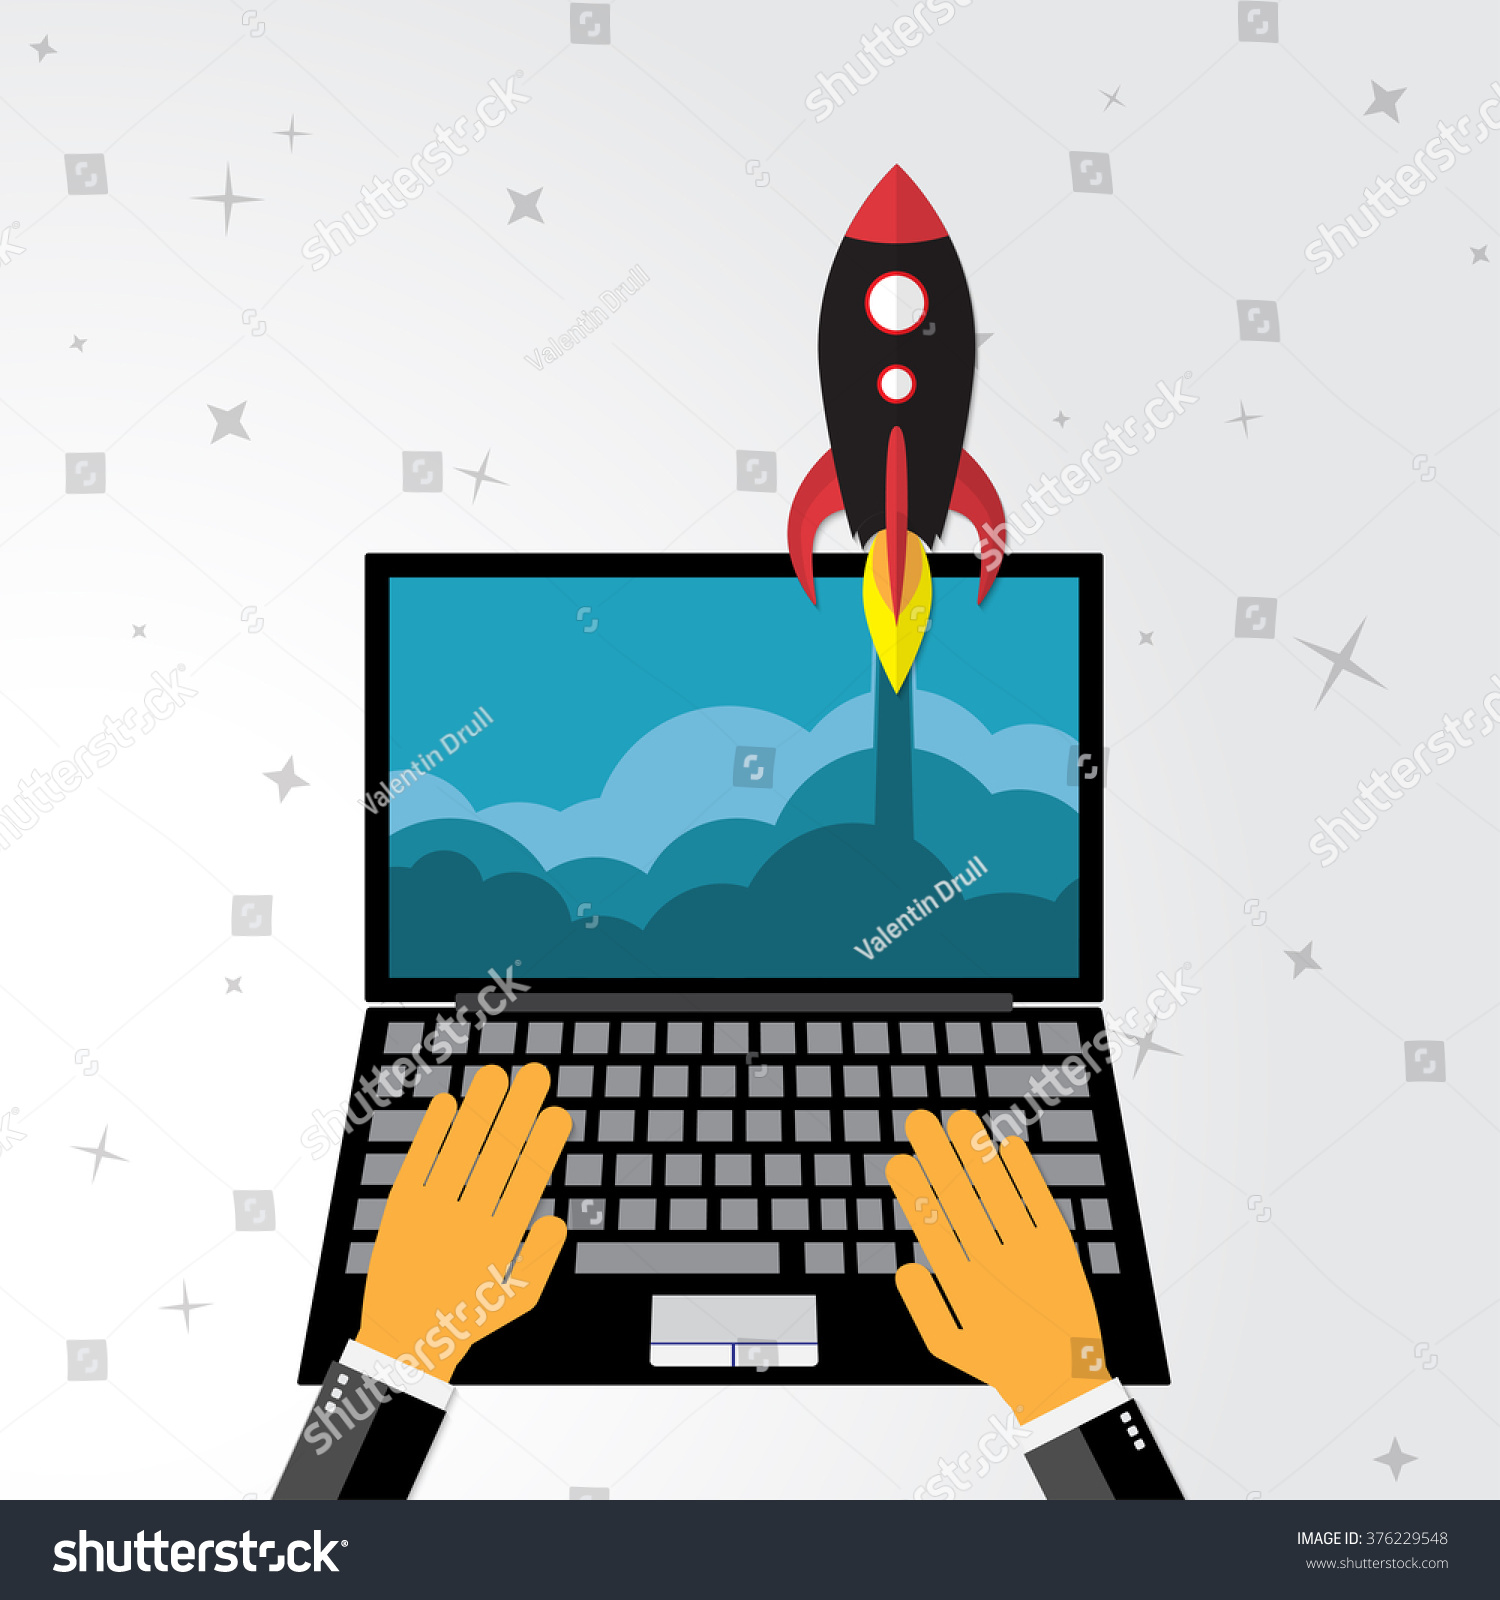 Business Concept Project Startup Rocket Launch Stock Illustration